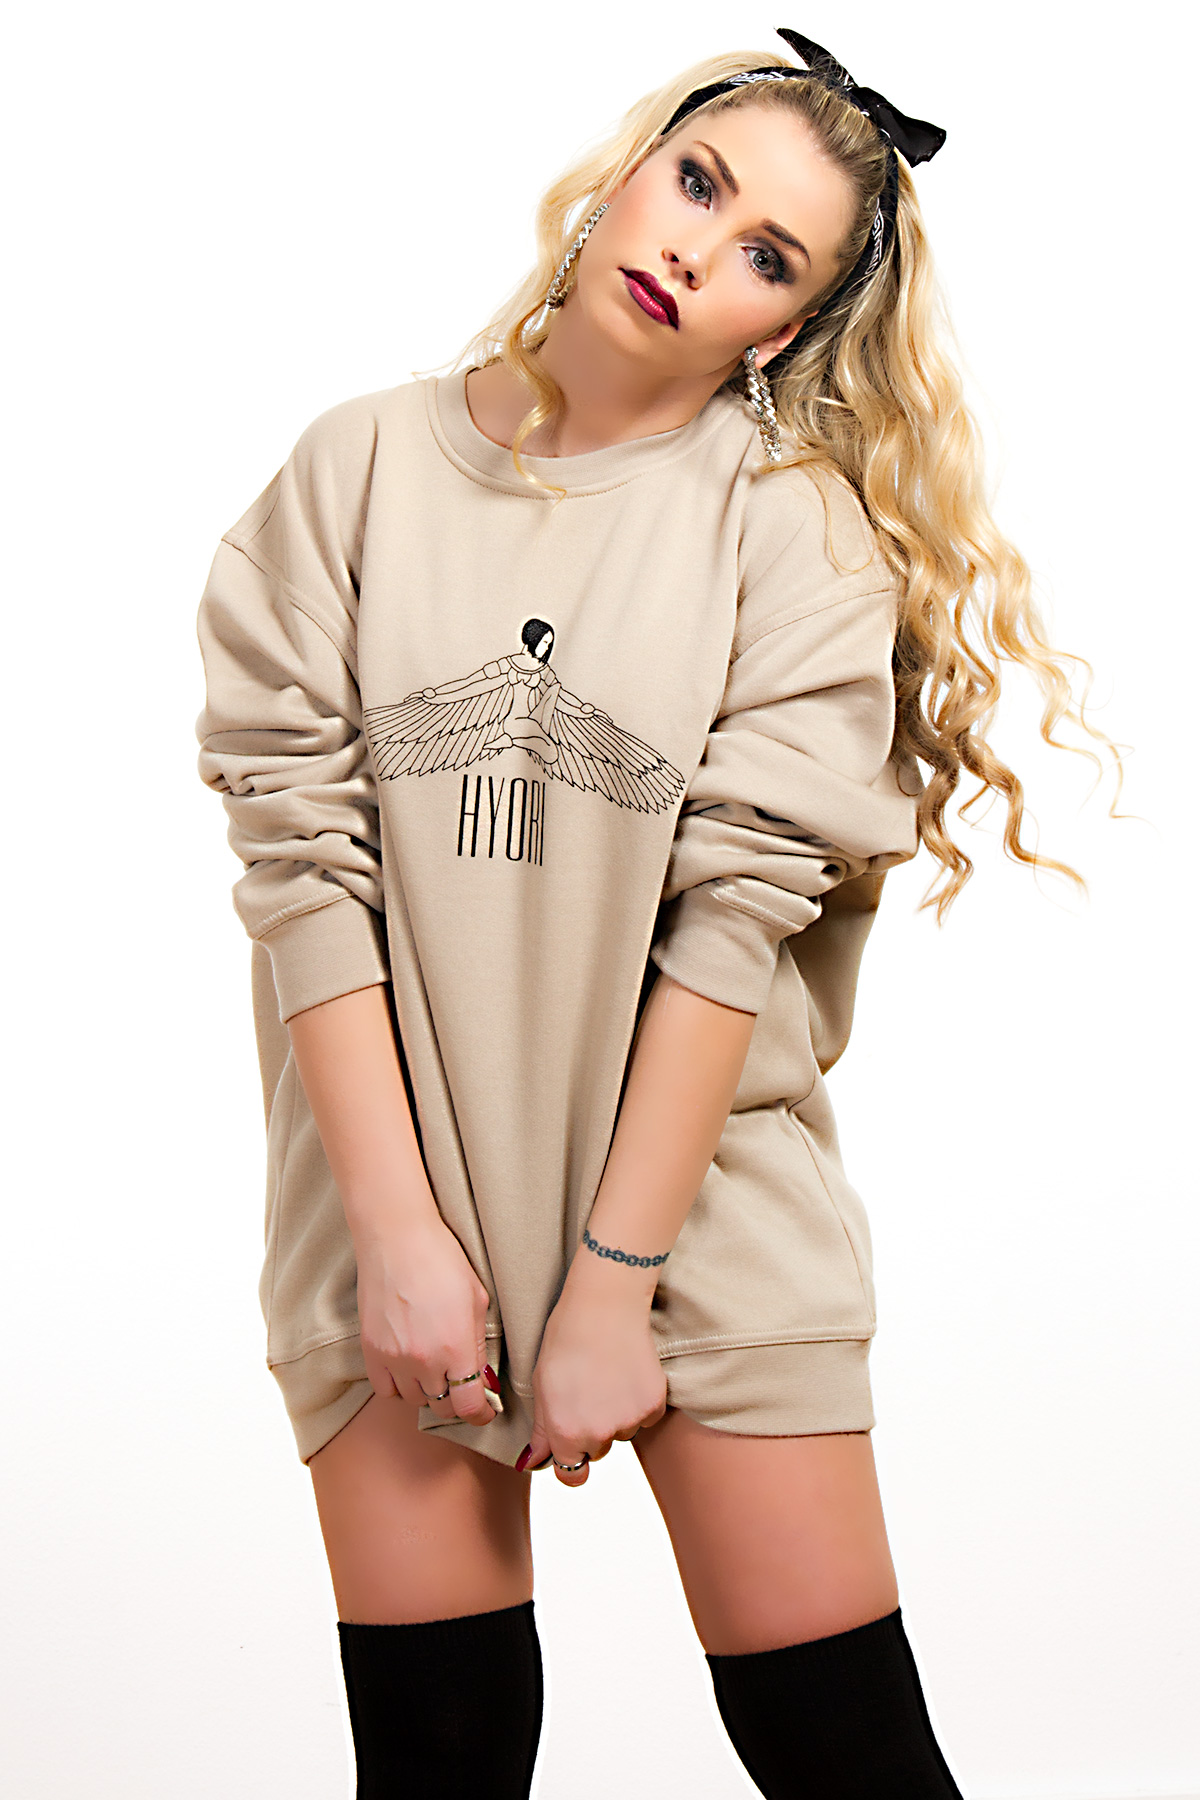 Hyori Goddess Isis Sweatshirt in Beige for Women